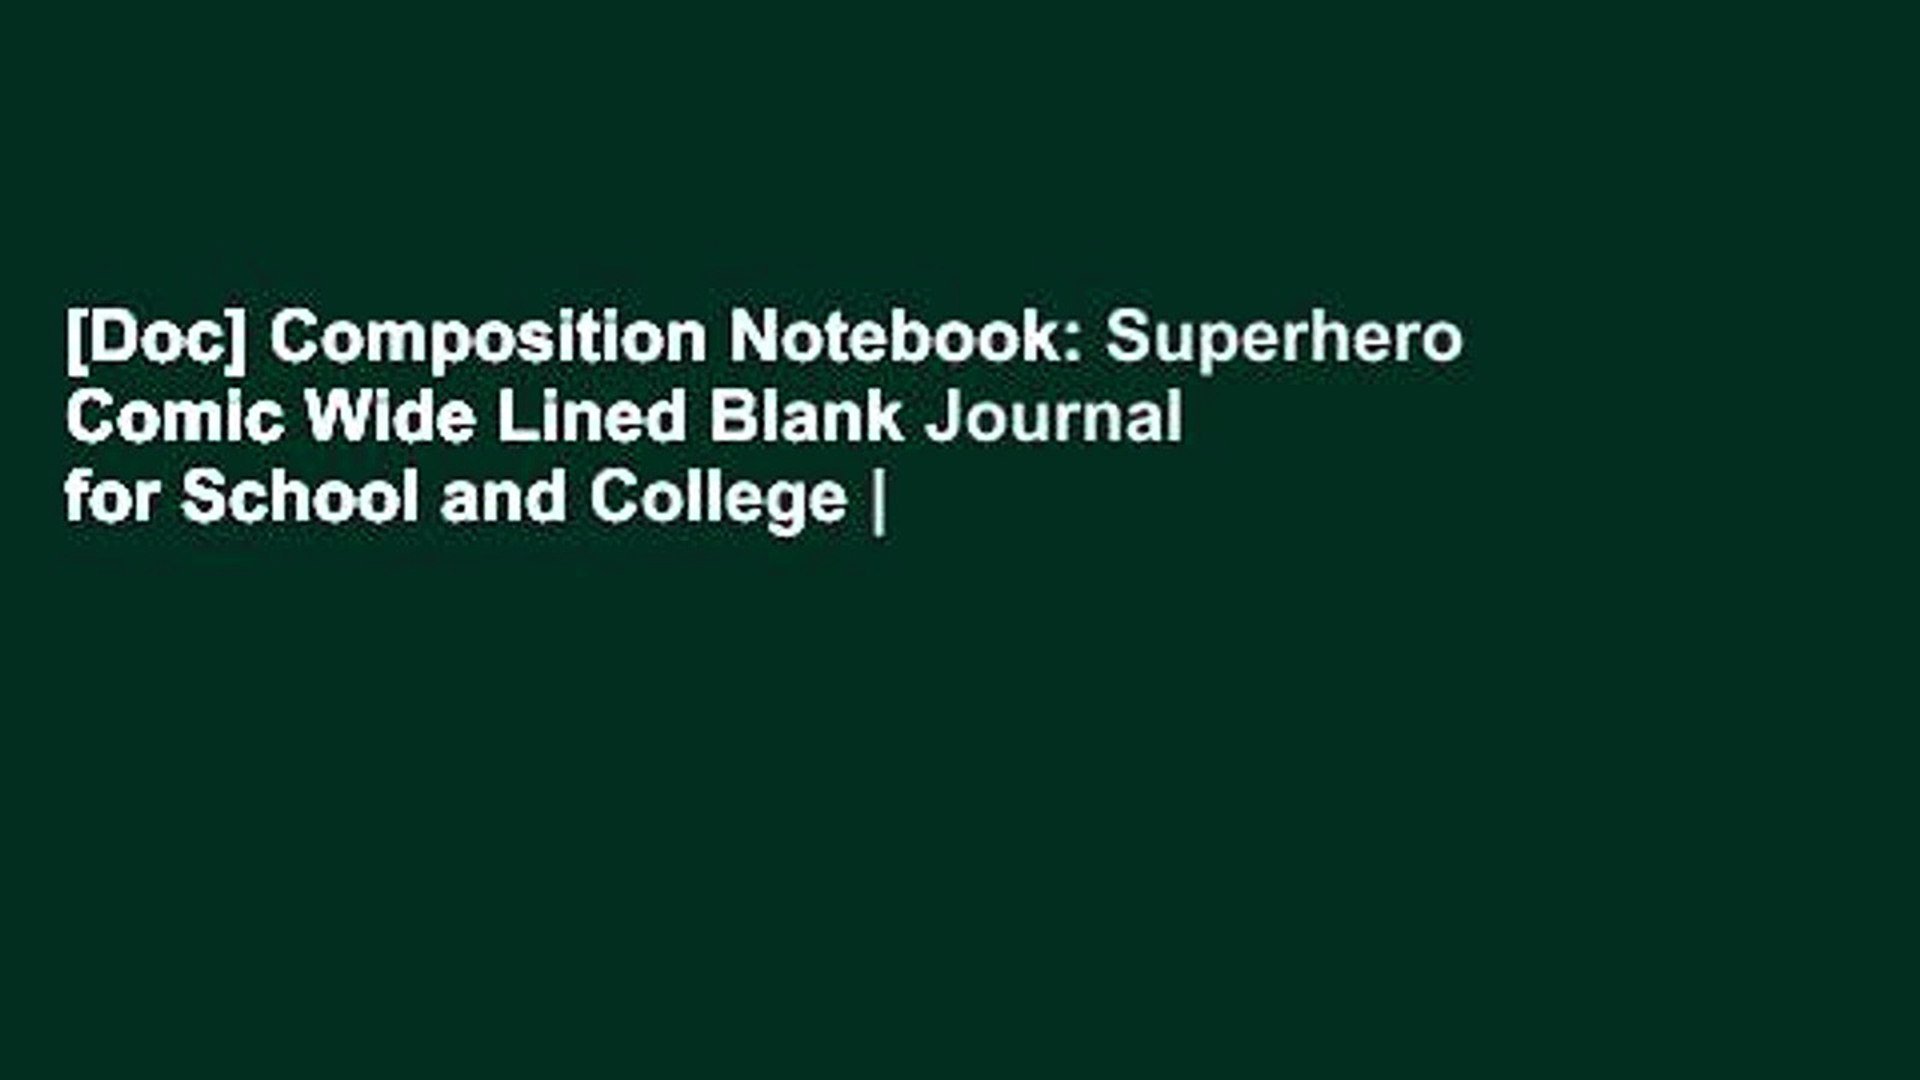 [Doc] Composition Notebook: Superhero Comic Wide Lined Blank Journal for School and College  